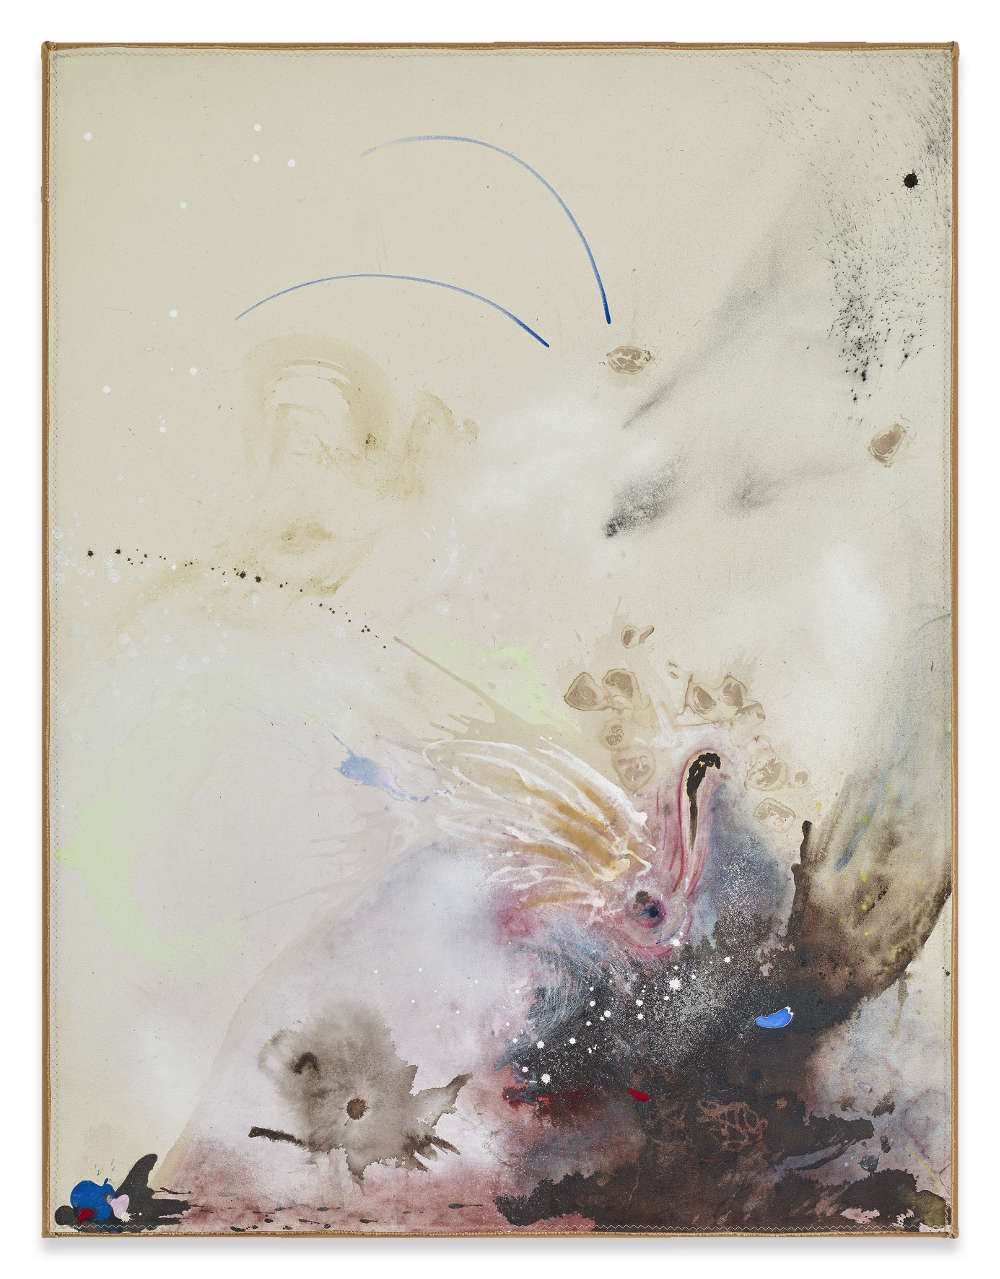 Lucy Dodd, The Snooze at Swan's Noon, 2018. Wild walnut, hematite, Tetley's, cochineal, azurite, squid ink, baby poo, Dragon's Blood, dry pigments, and acrylic on canvas 159,4 x 120 cm 62 3/4 x 47 1/4 inches © Lucy Dodd. Courtesy of Sprüth Magers and David Lewis Gallery, New York. Photography by Stephen White